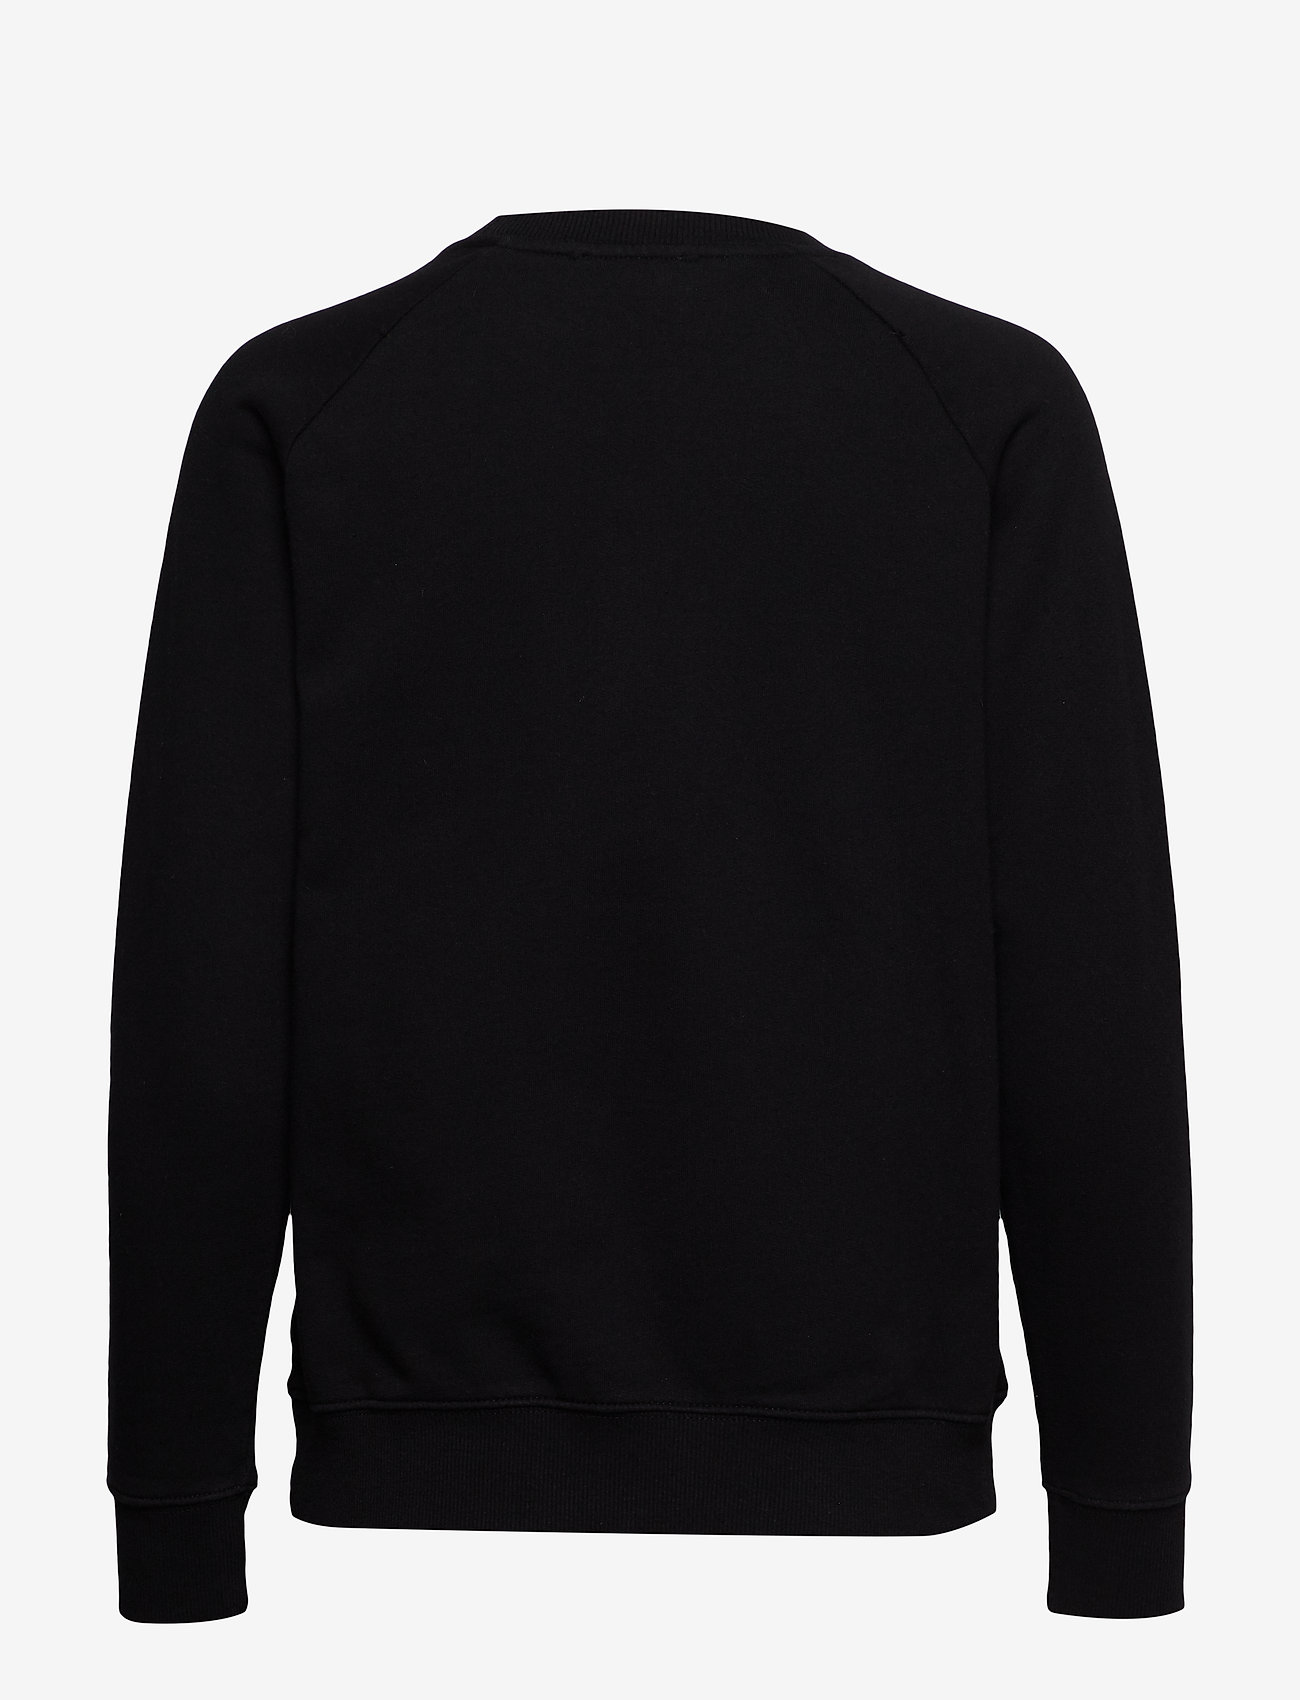 Lee Jeans - PLAIN CREW NECK SWS - sweatshirts - black - 1